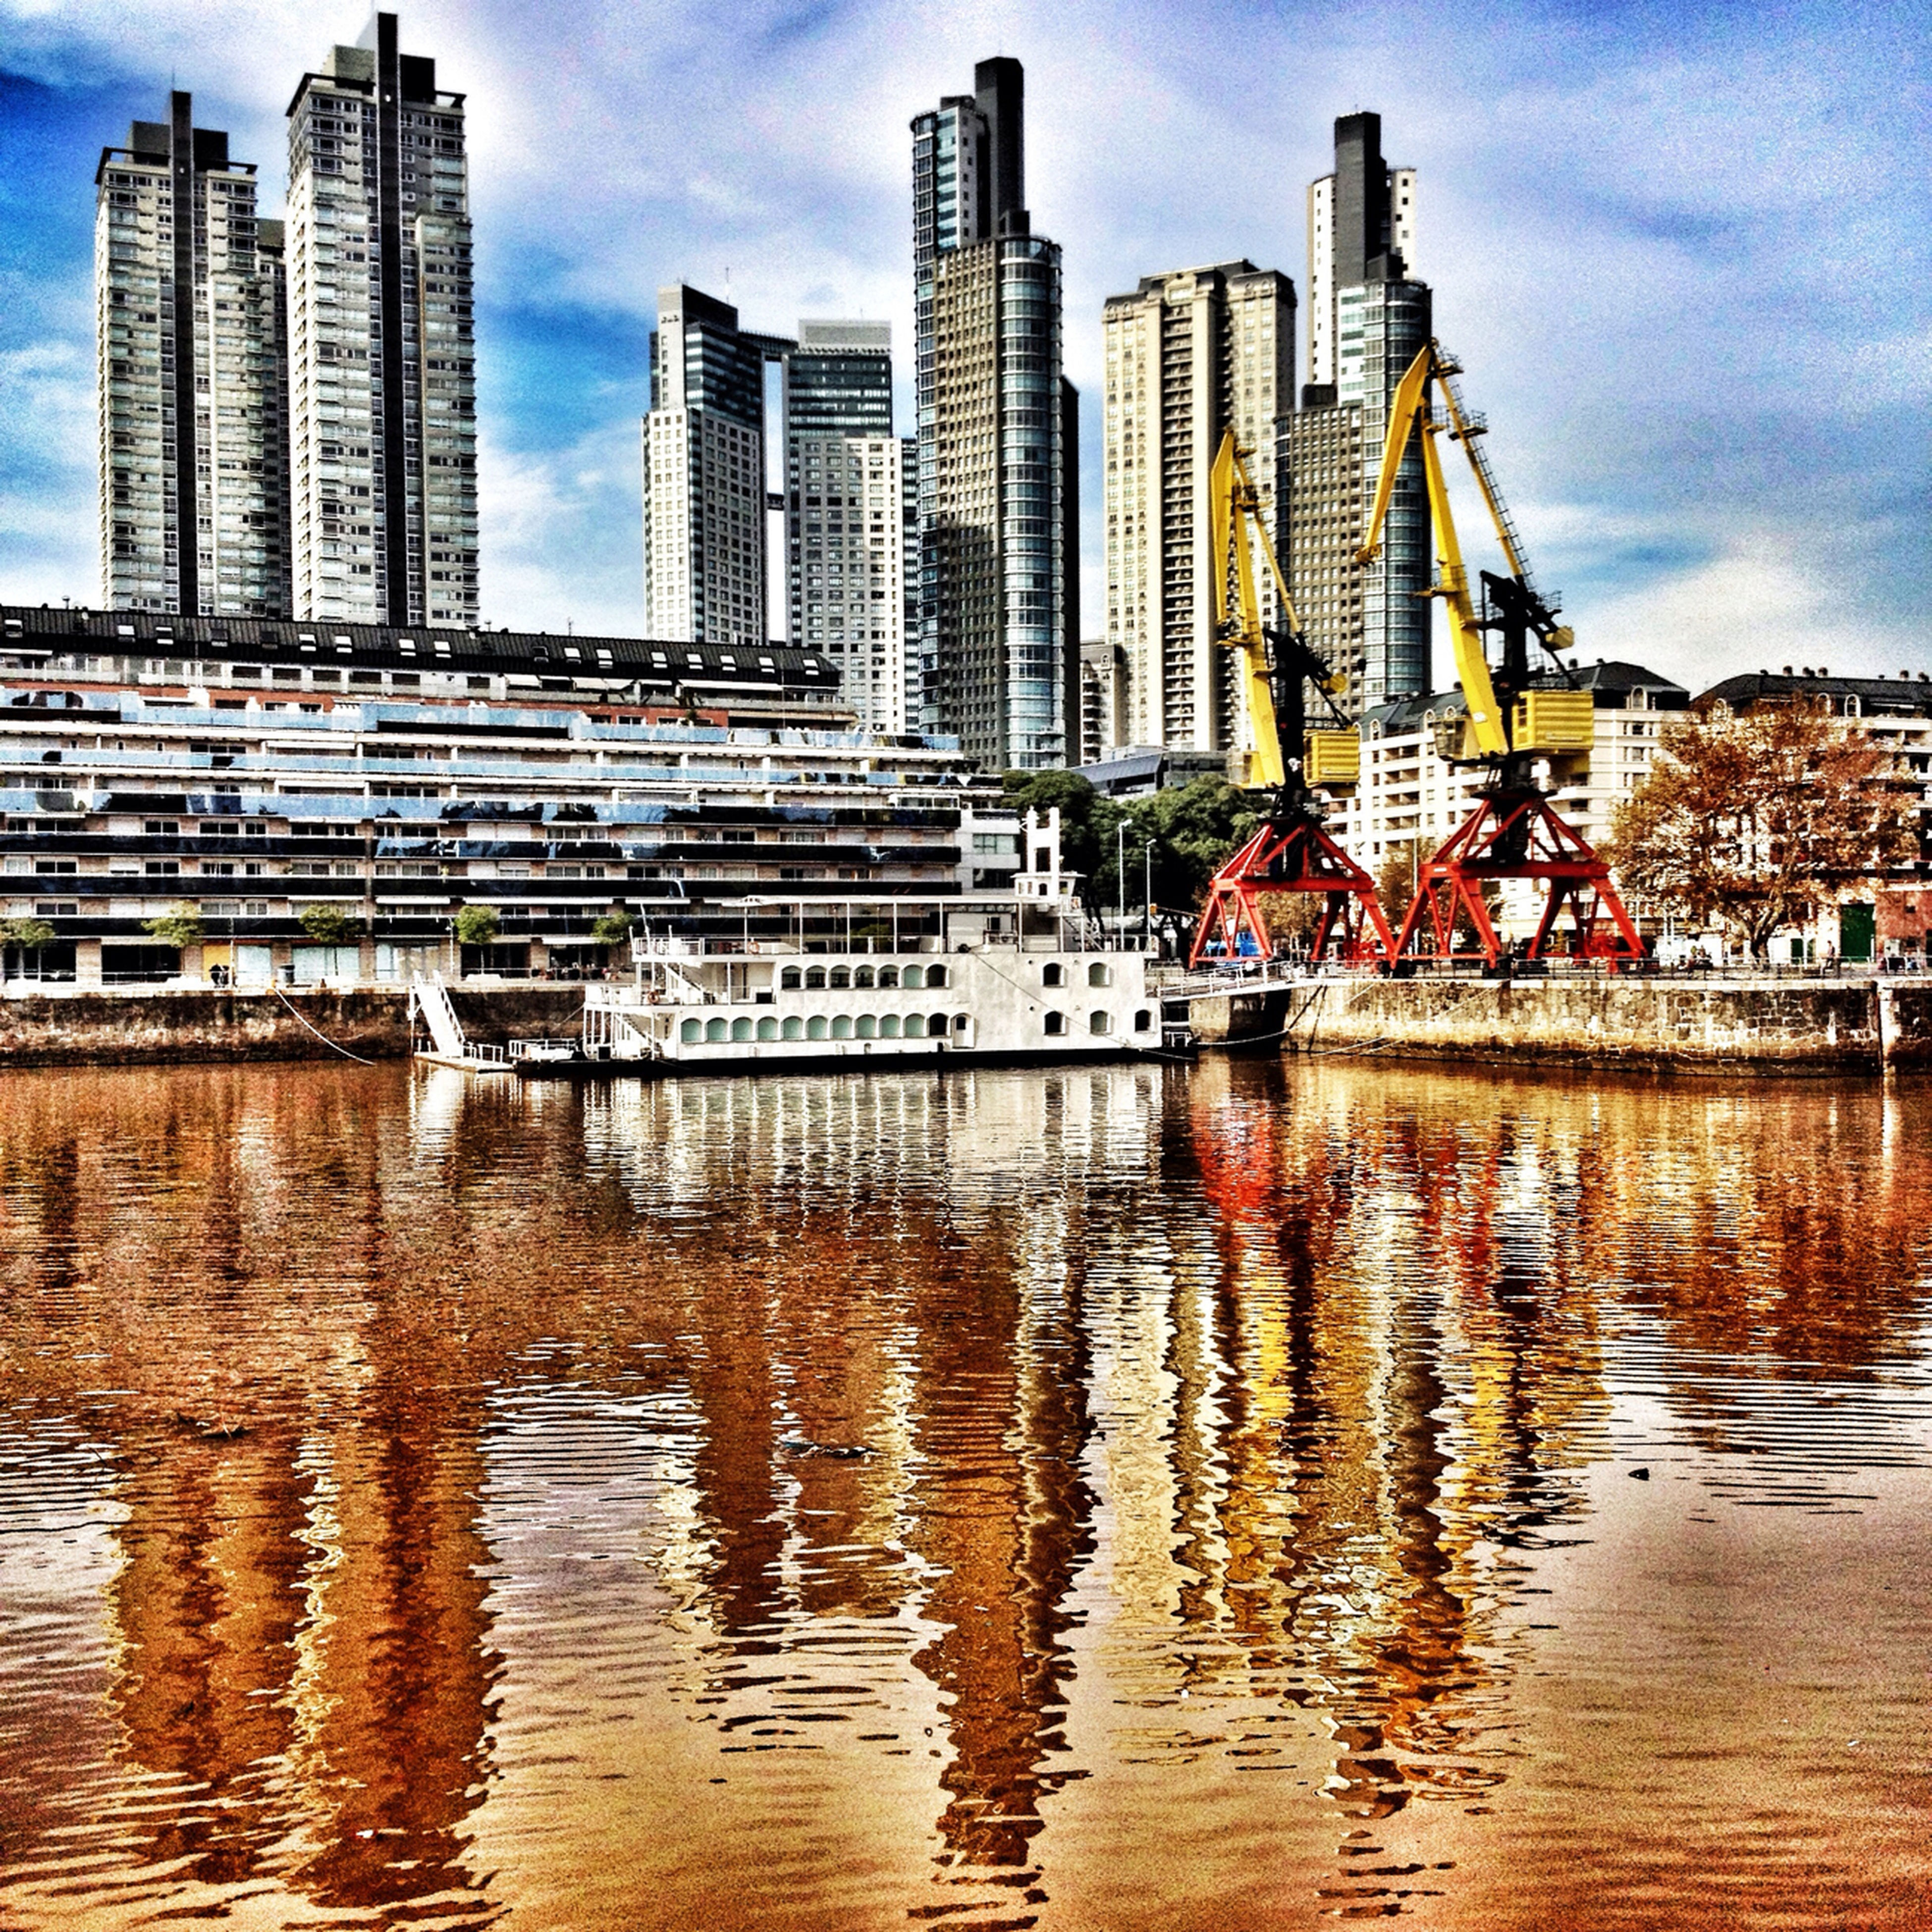 building exterior, architecture, built structure, water, city, waterfront, reflection, skyscraper, modern, building, sky, office building, river, cityscape, tall - high, tower, residential building, city life, urban skyline, residential structure